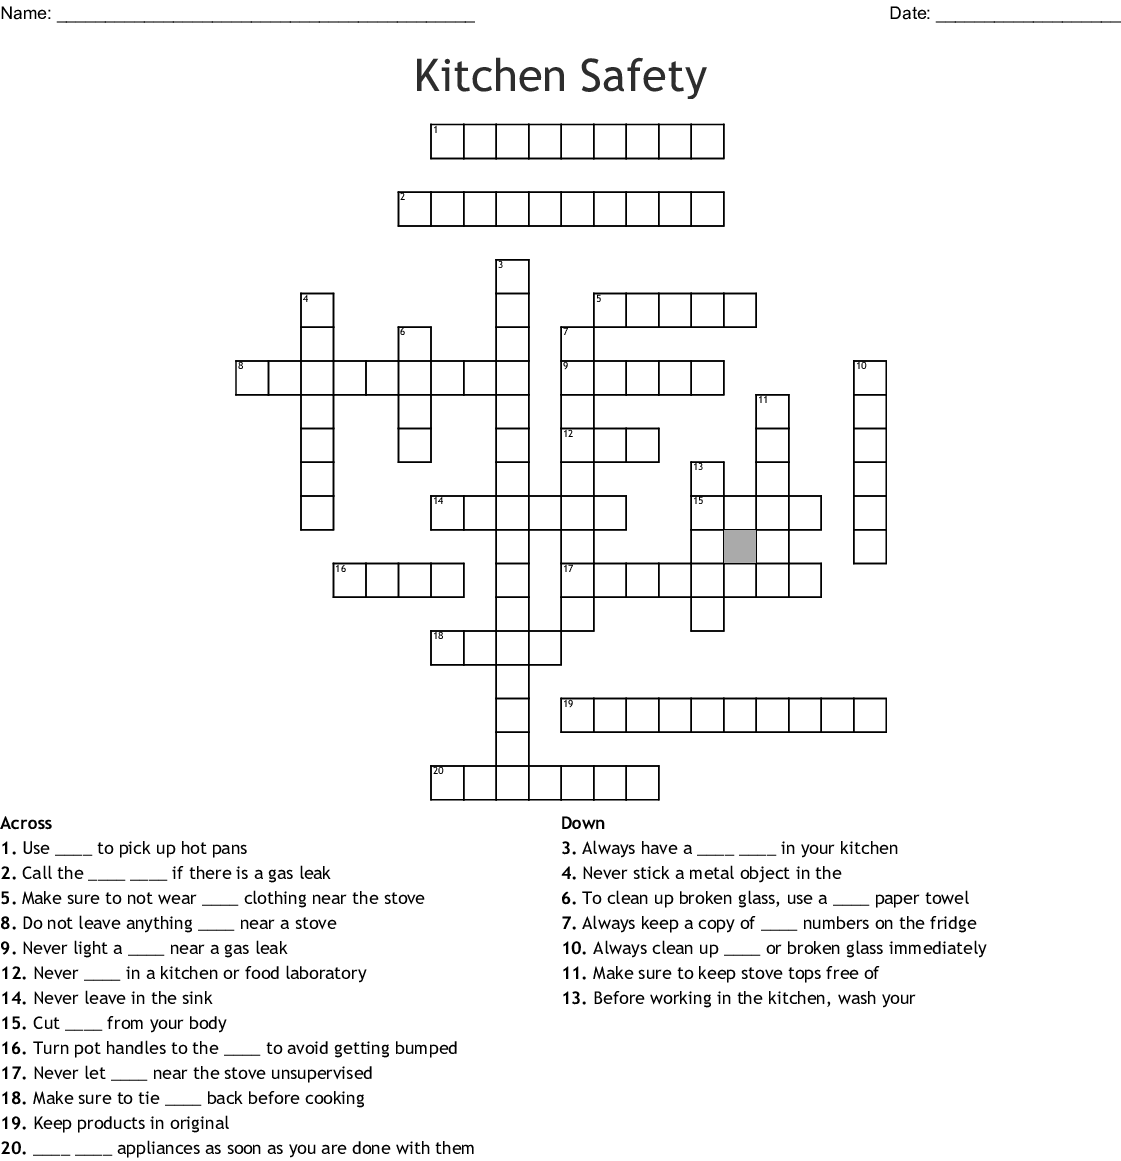 Culinary Arts Safety Rules Crossword Wordmint